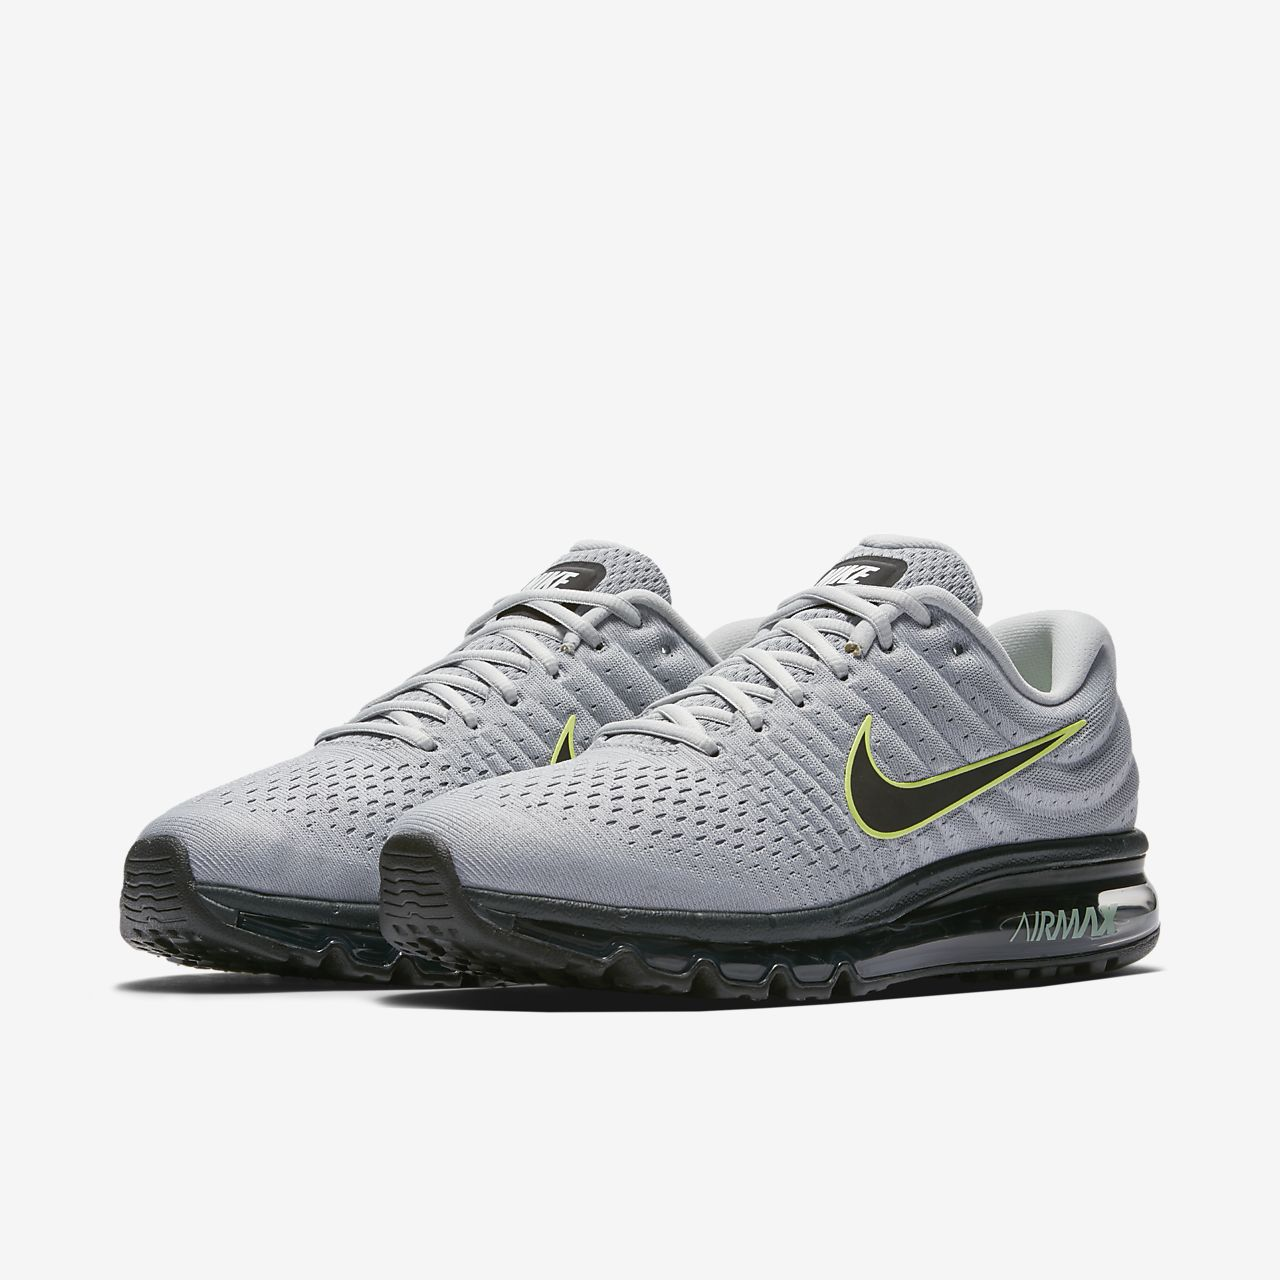 pretty nice 09f0d 3ffe0 Nike Air Max 2017 Men's Shoe